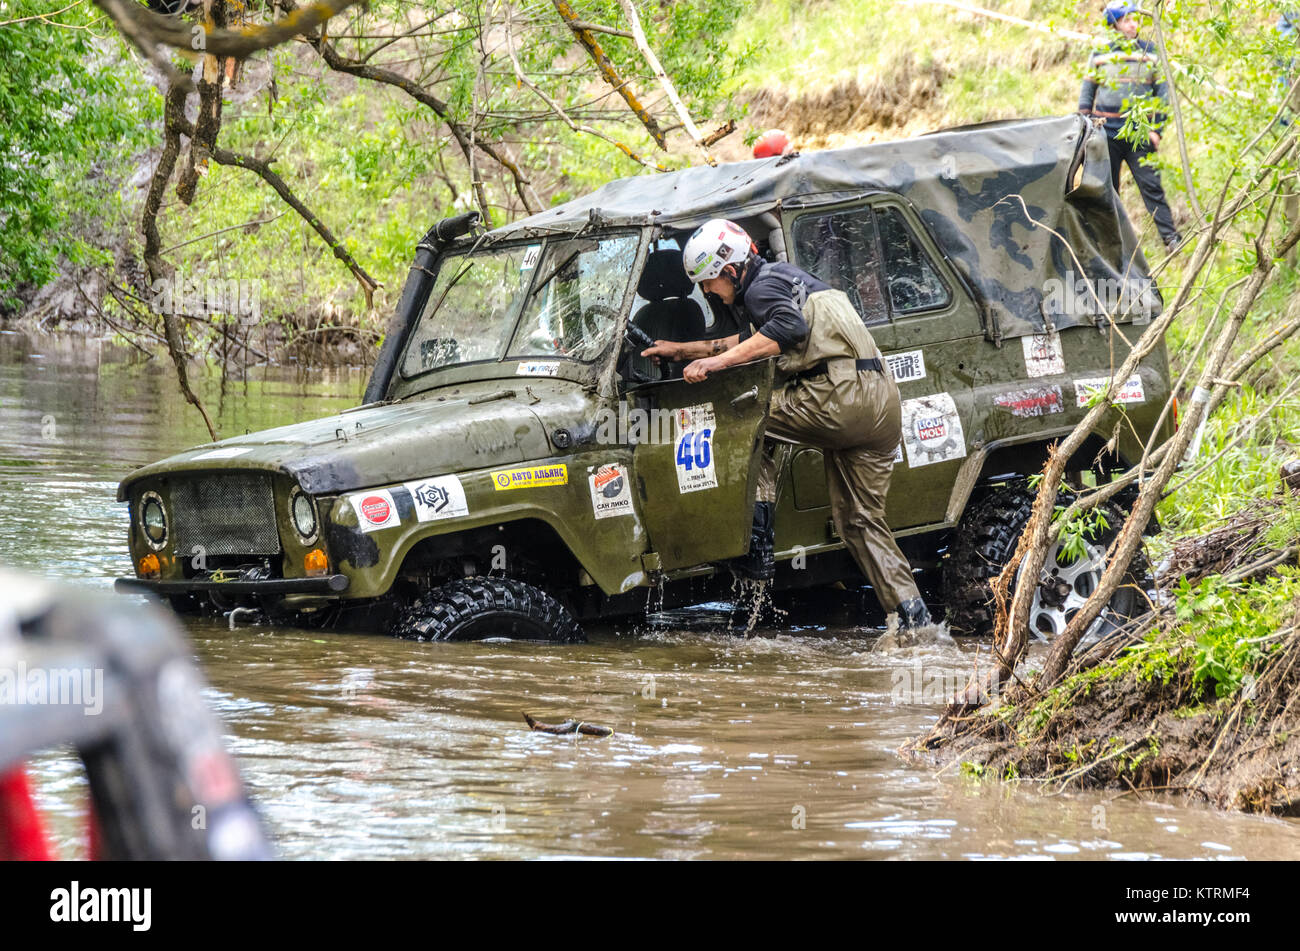 SALOVKA, RUSSIA - MAY 5, 2017: Annual racing on SUVs on impassability at the annual competition 'Trofi rubezh - Stock Image